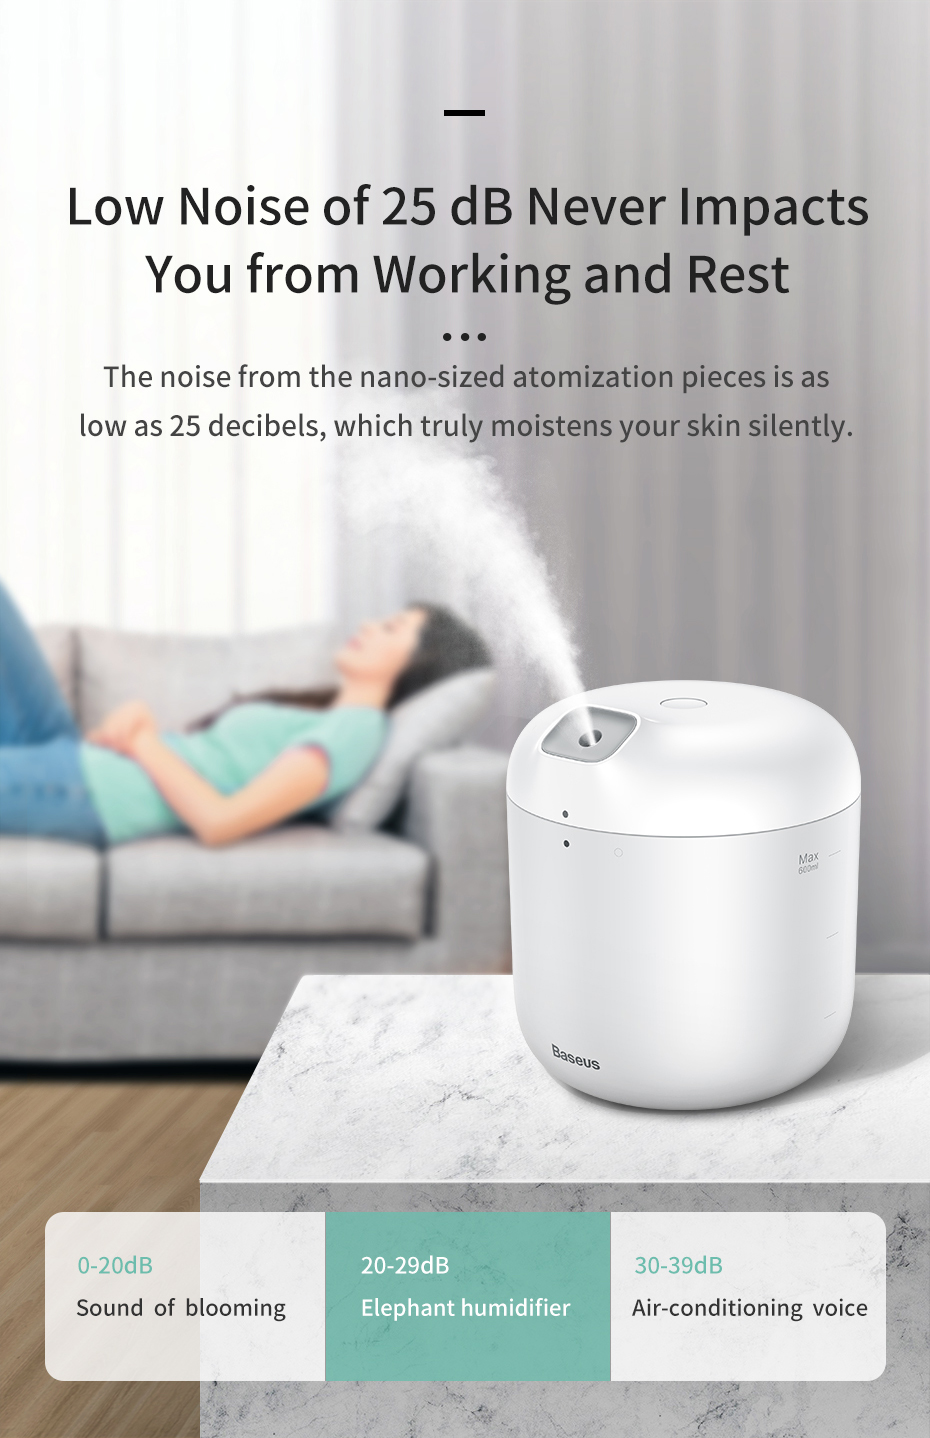 Baseus Humidifier Air Humidifier Diffuser For Office Home with LED Night Light